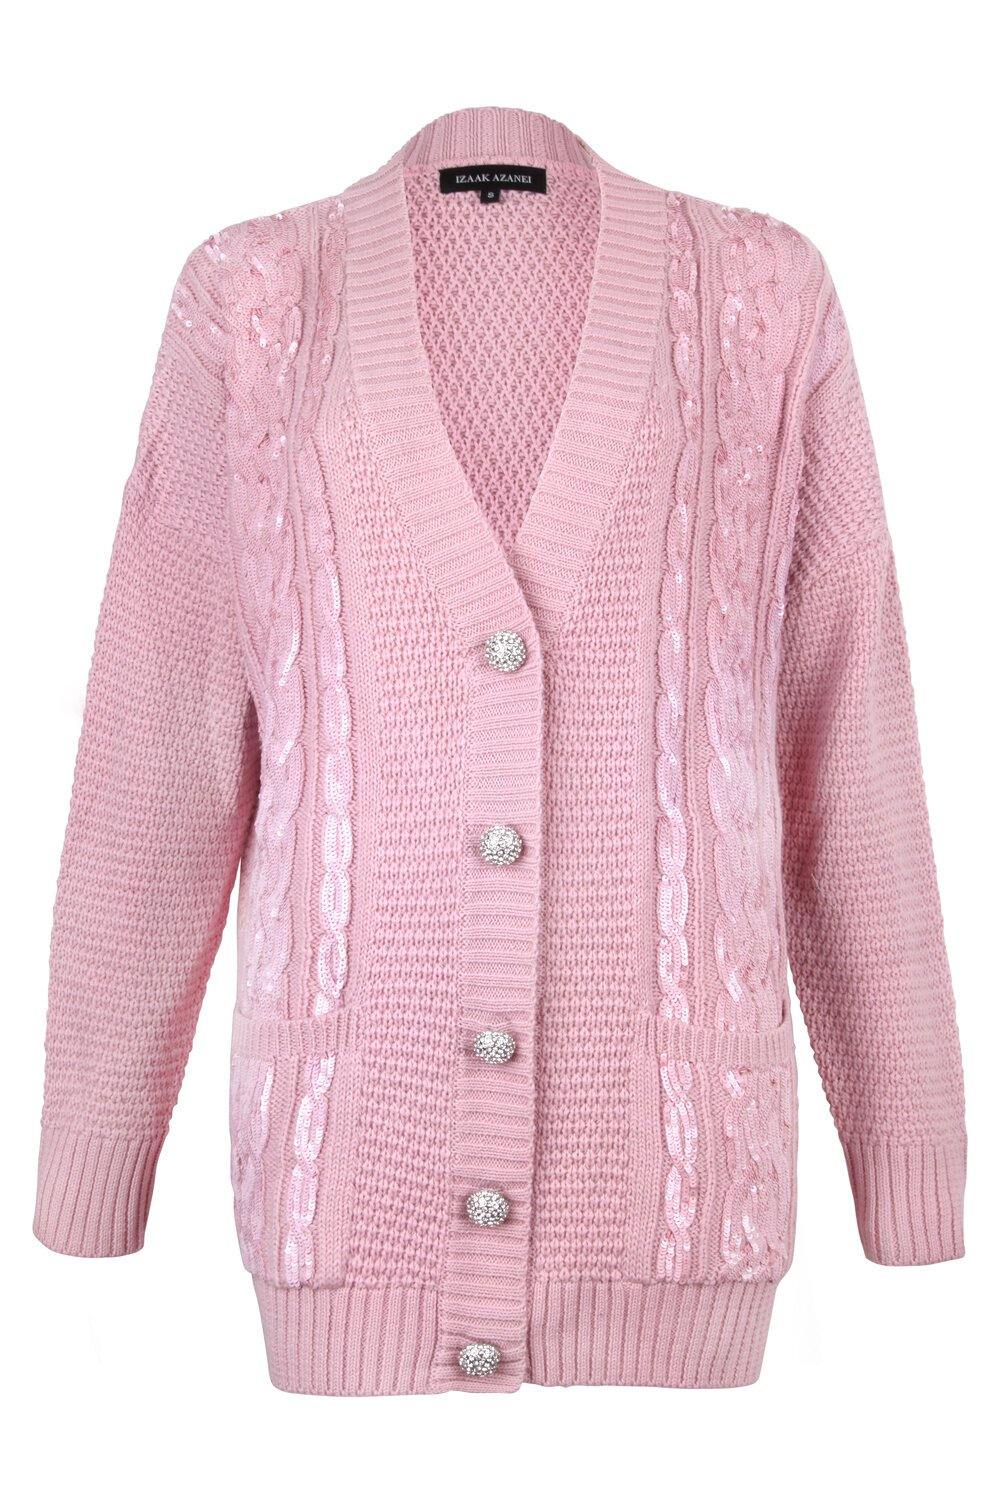 Pink Sequin Embellished Cable Cardigan (Mummy) - Little IA